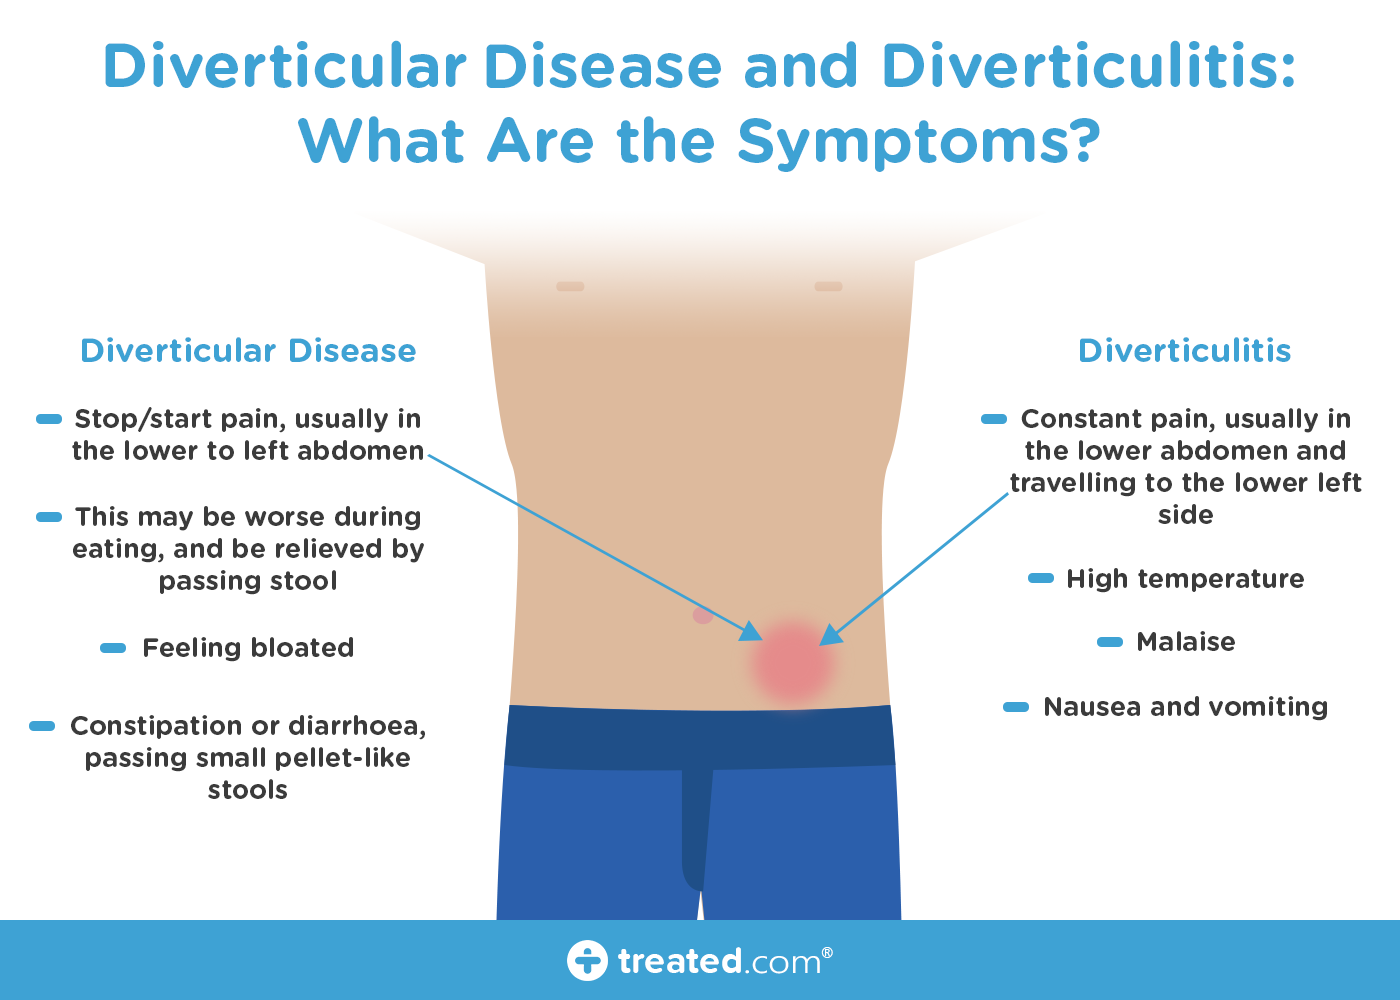 Diverticular Disease and Diverticulitis: Are They Related to